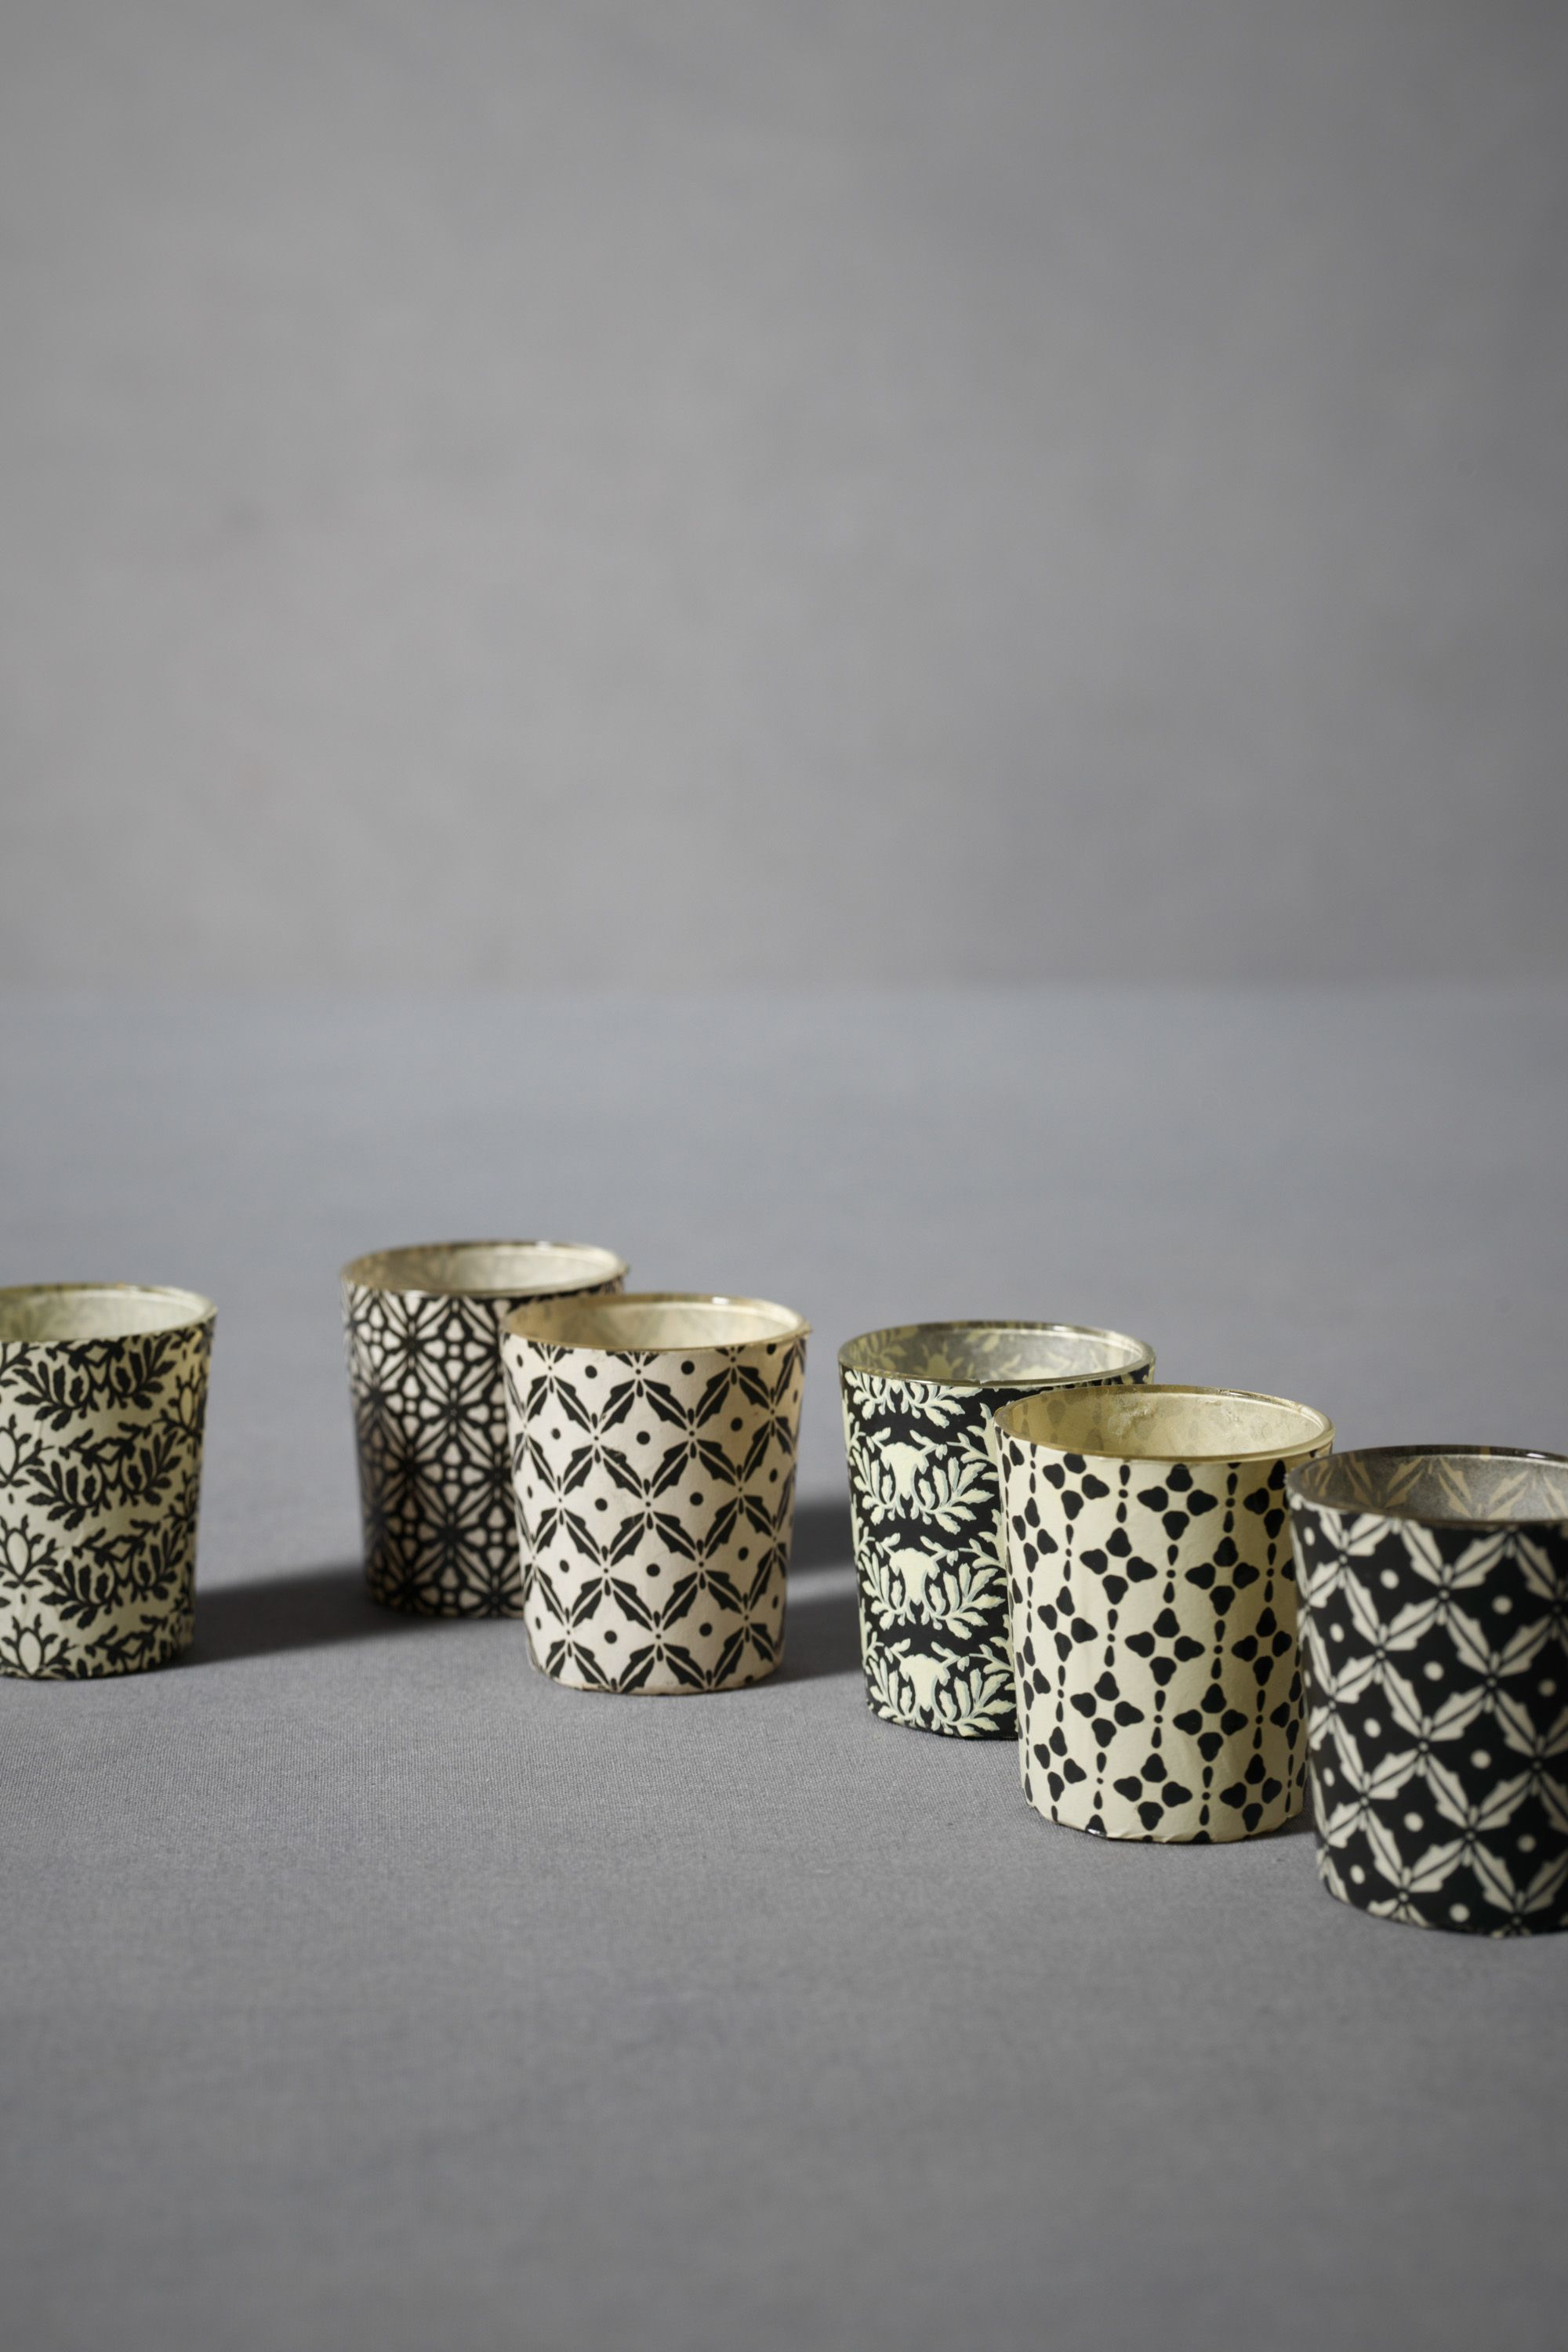 Overpriced patterned votives from BHLDN.